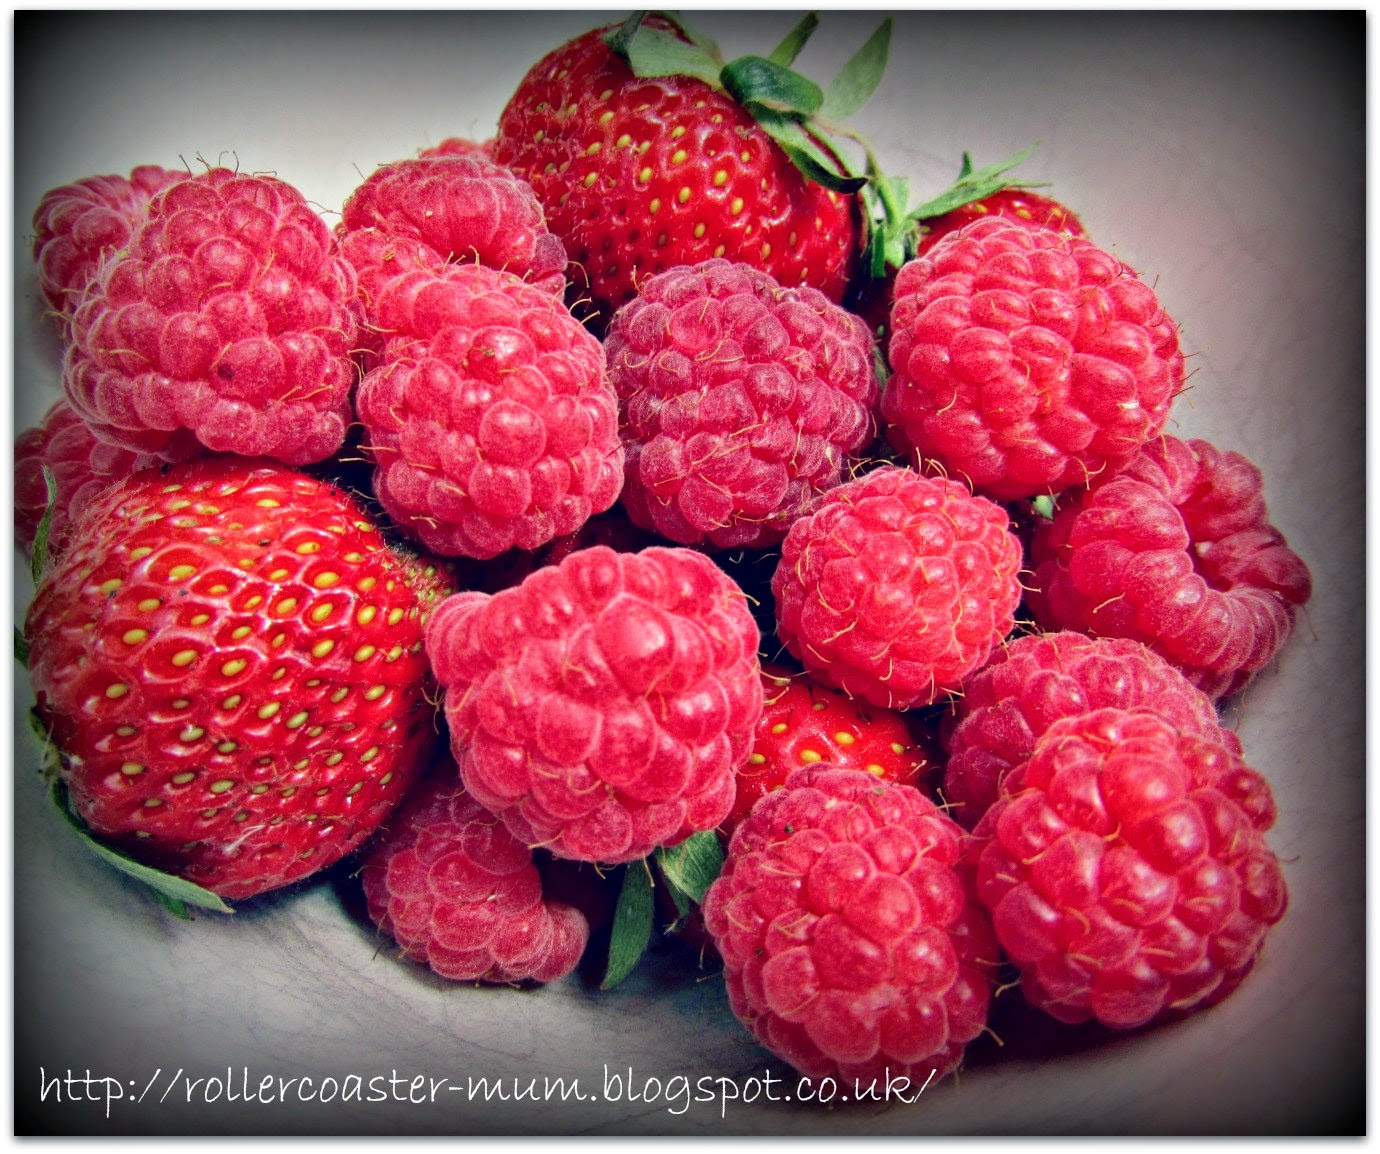 Grow Your Own, raspberries and strawberries